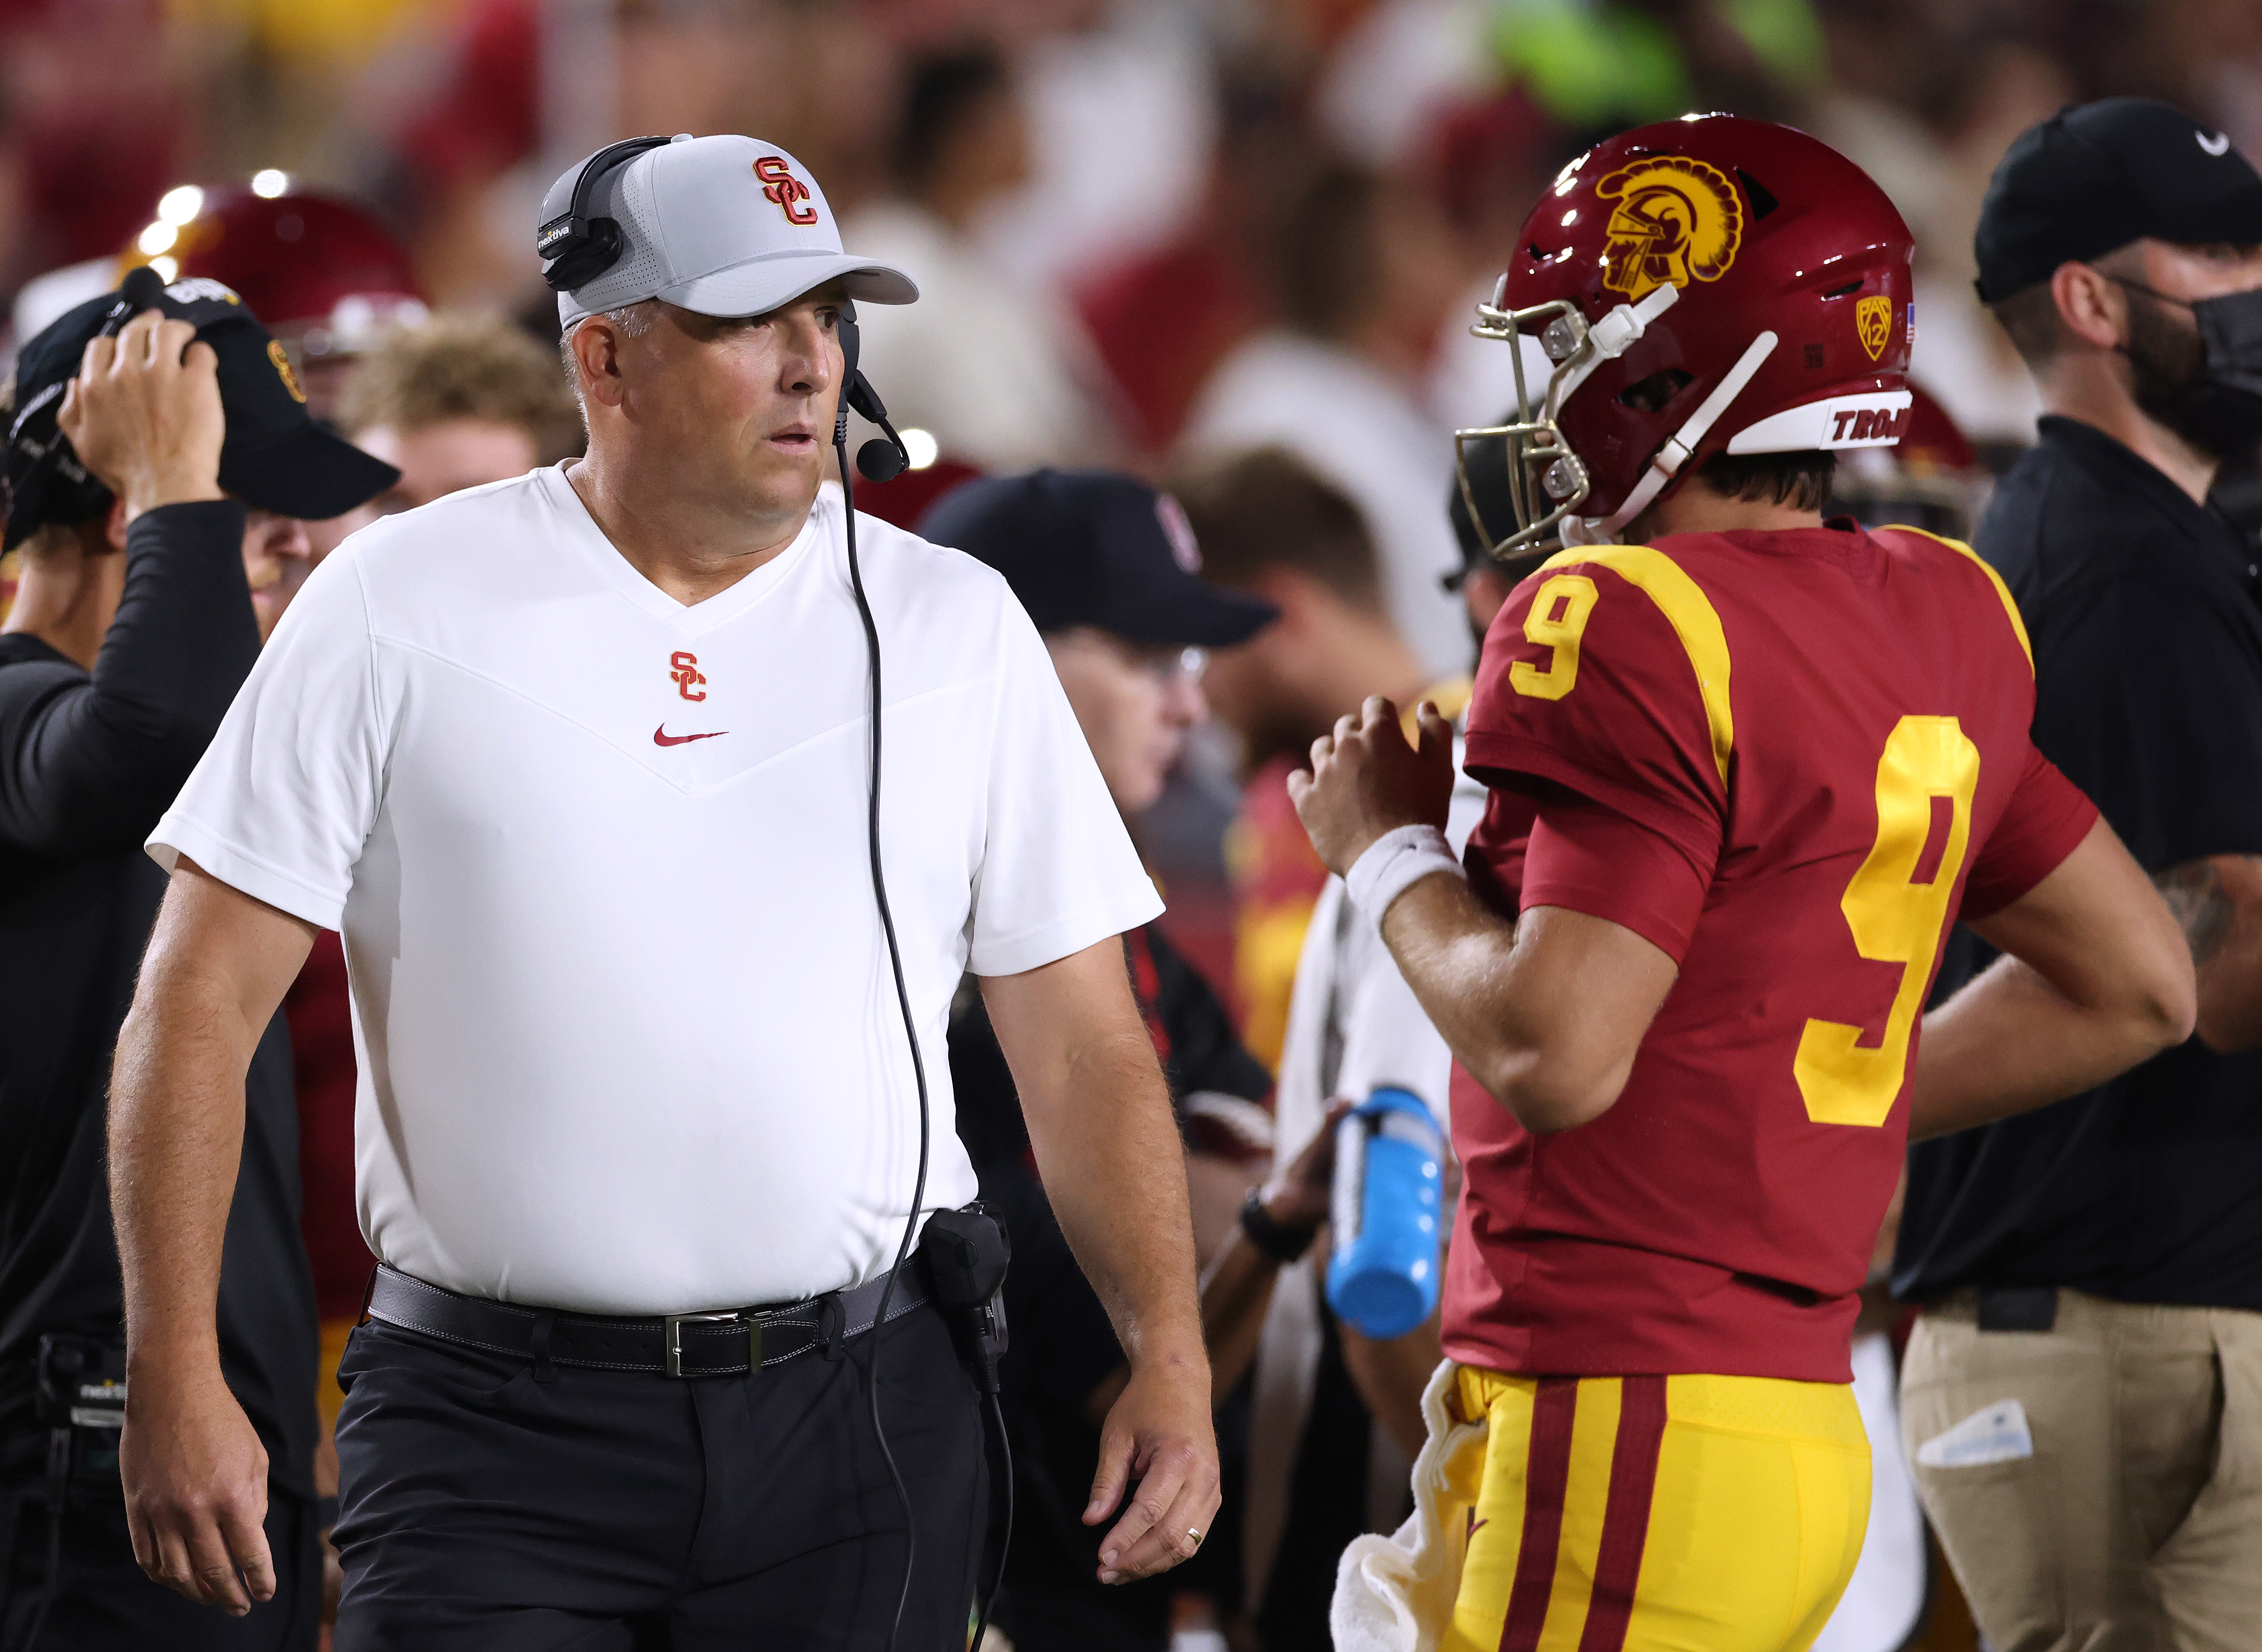 Head coach Clay Helton of USC Trojans reacts as Kedon Slovis comes off the field to punt on fourth down during the first quarter against the Stanford Cardinal at Los Angeles Memorial Coliseum on September 11, 2021 in Los Angeles, California.